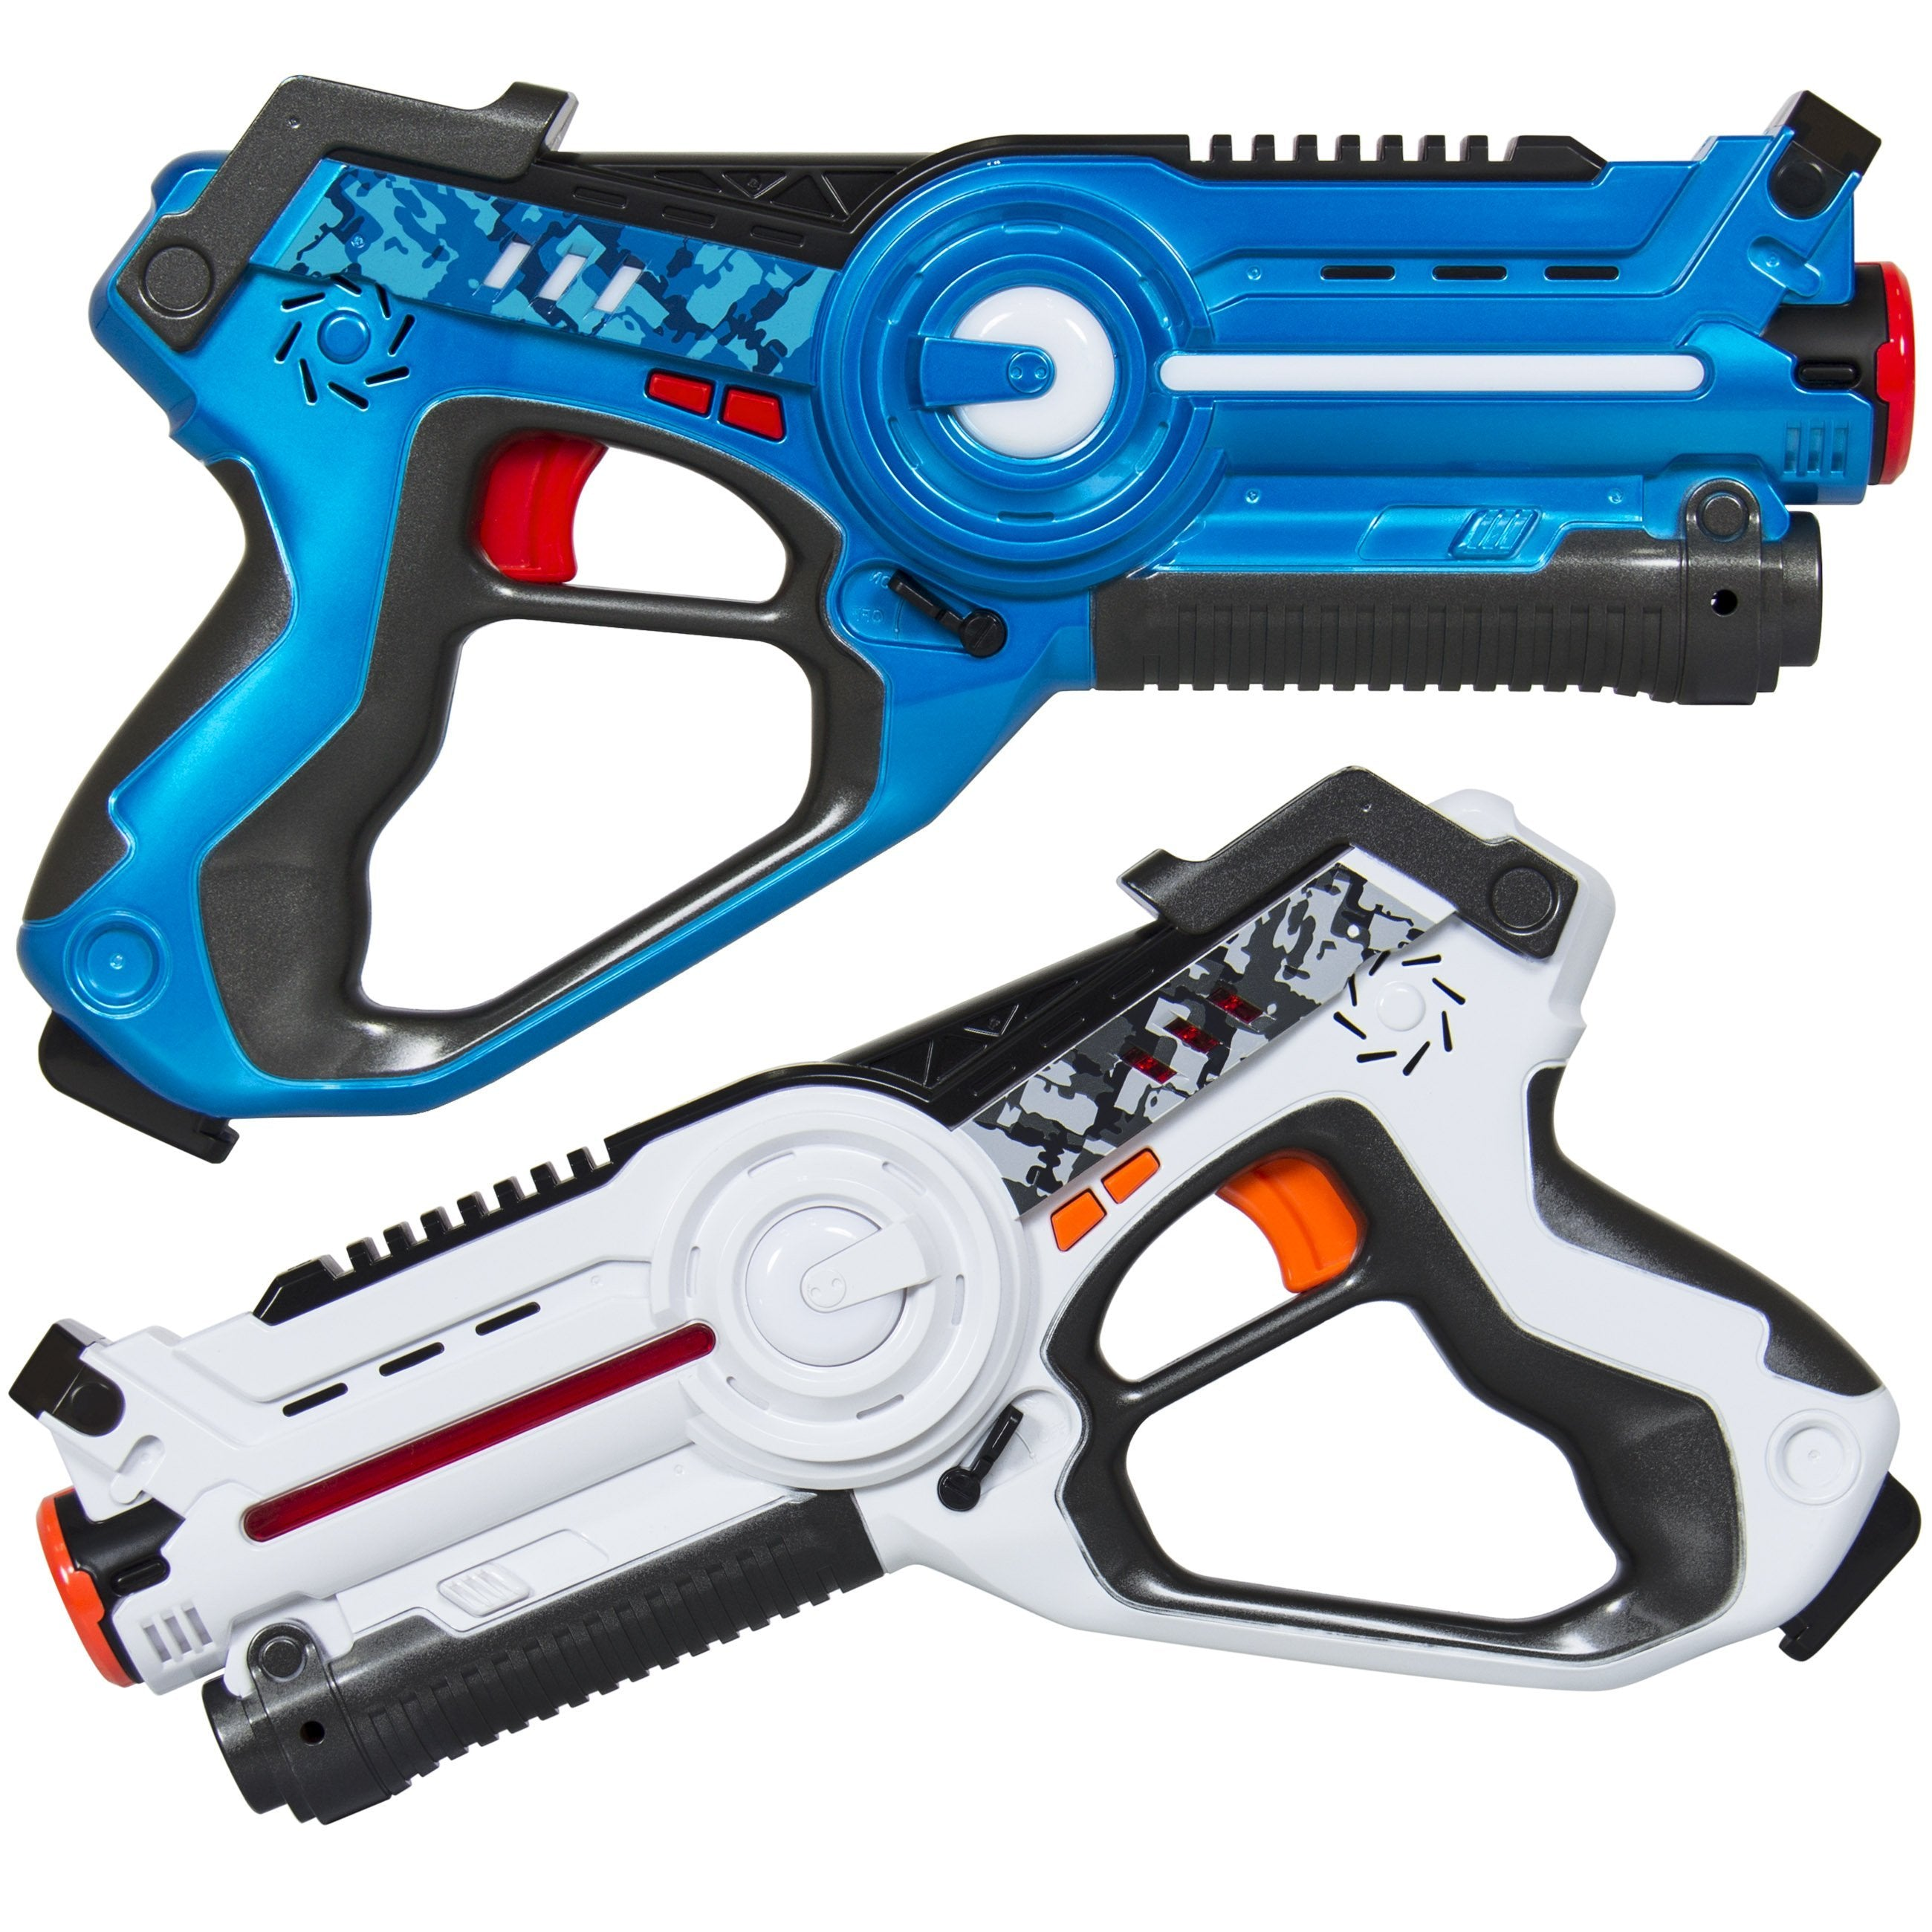 Set of 2 Infrared Laser Tag Blasters for Kids & Adults w/ 4 Settings